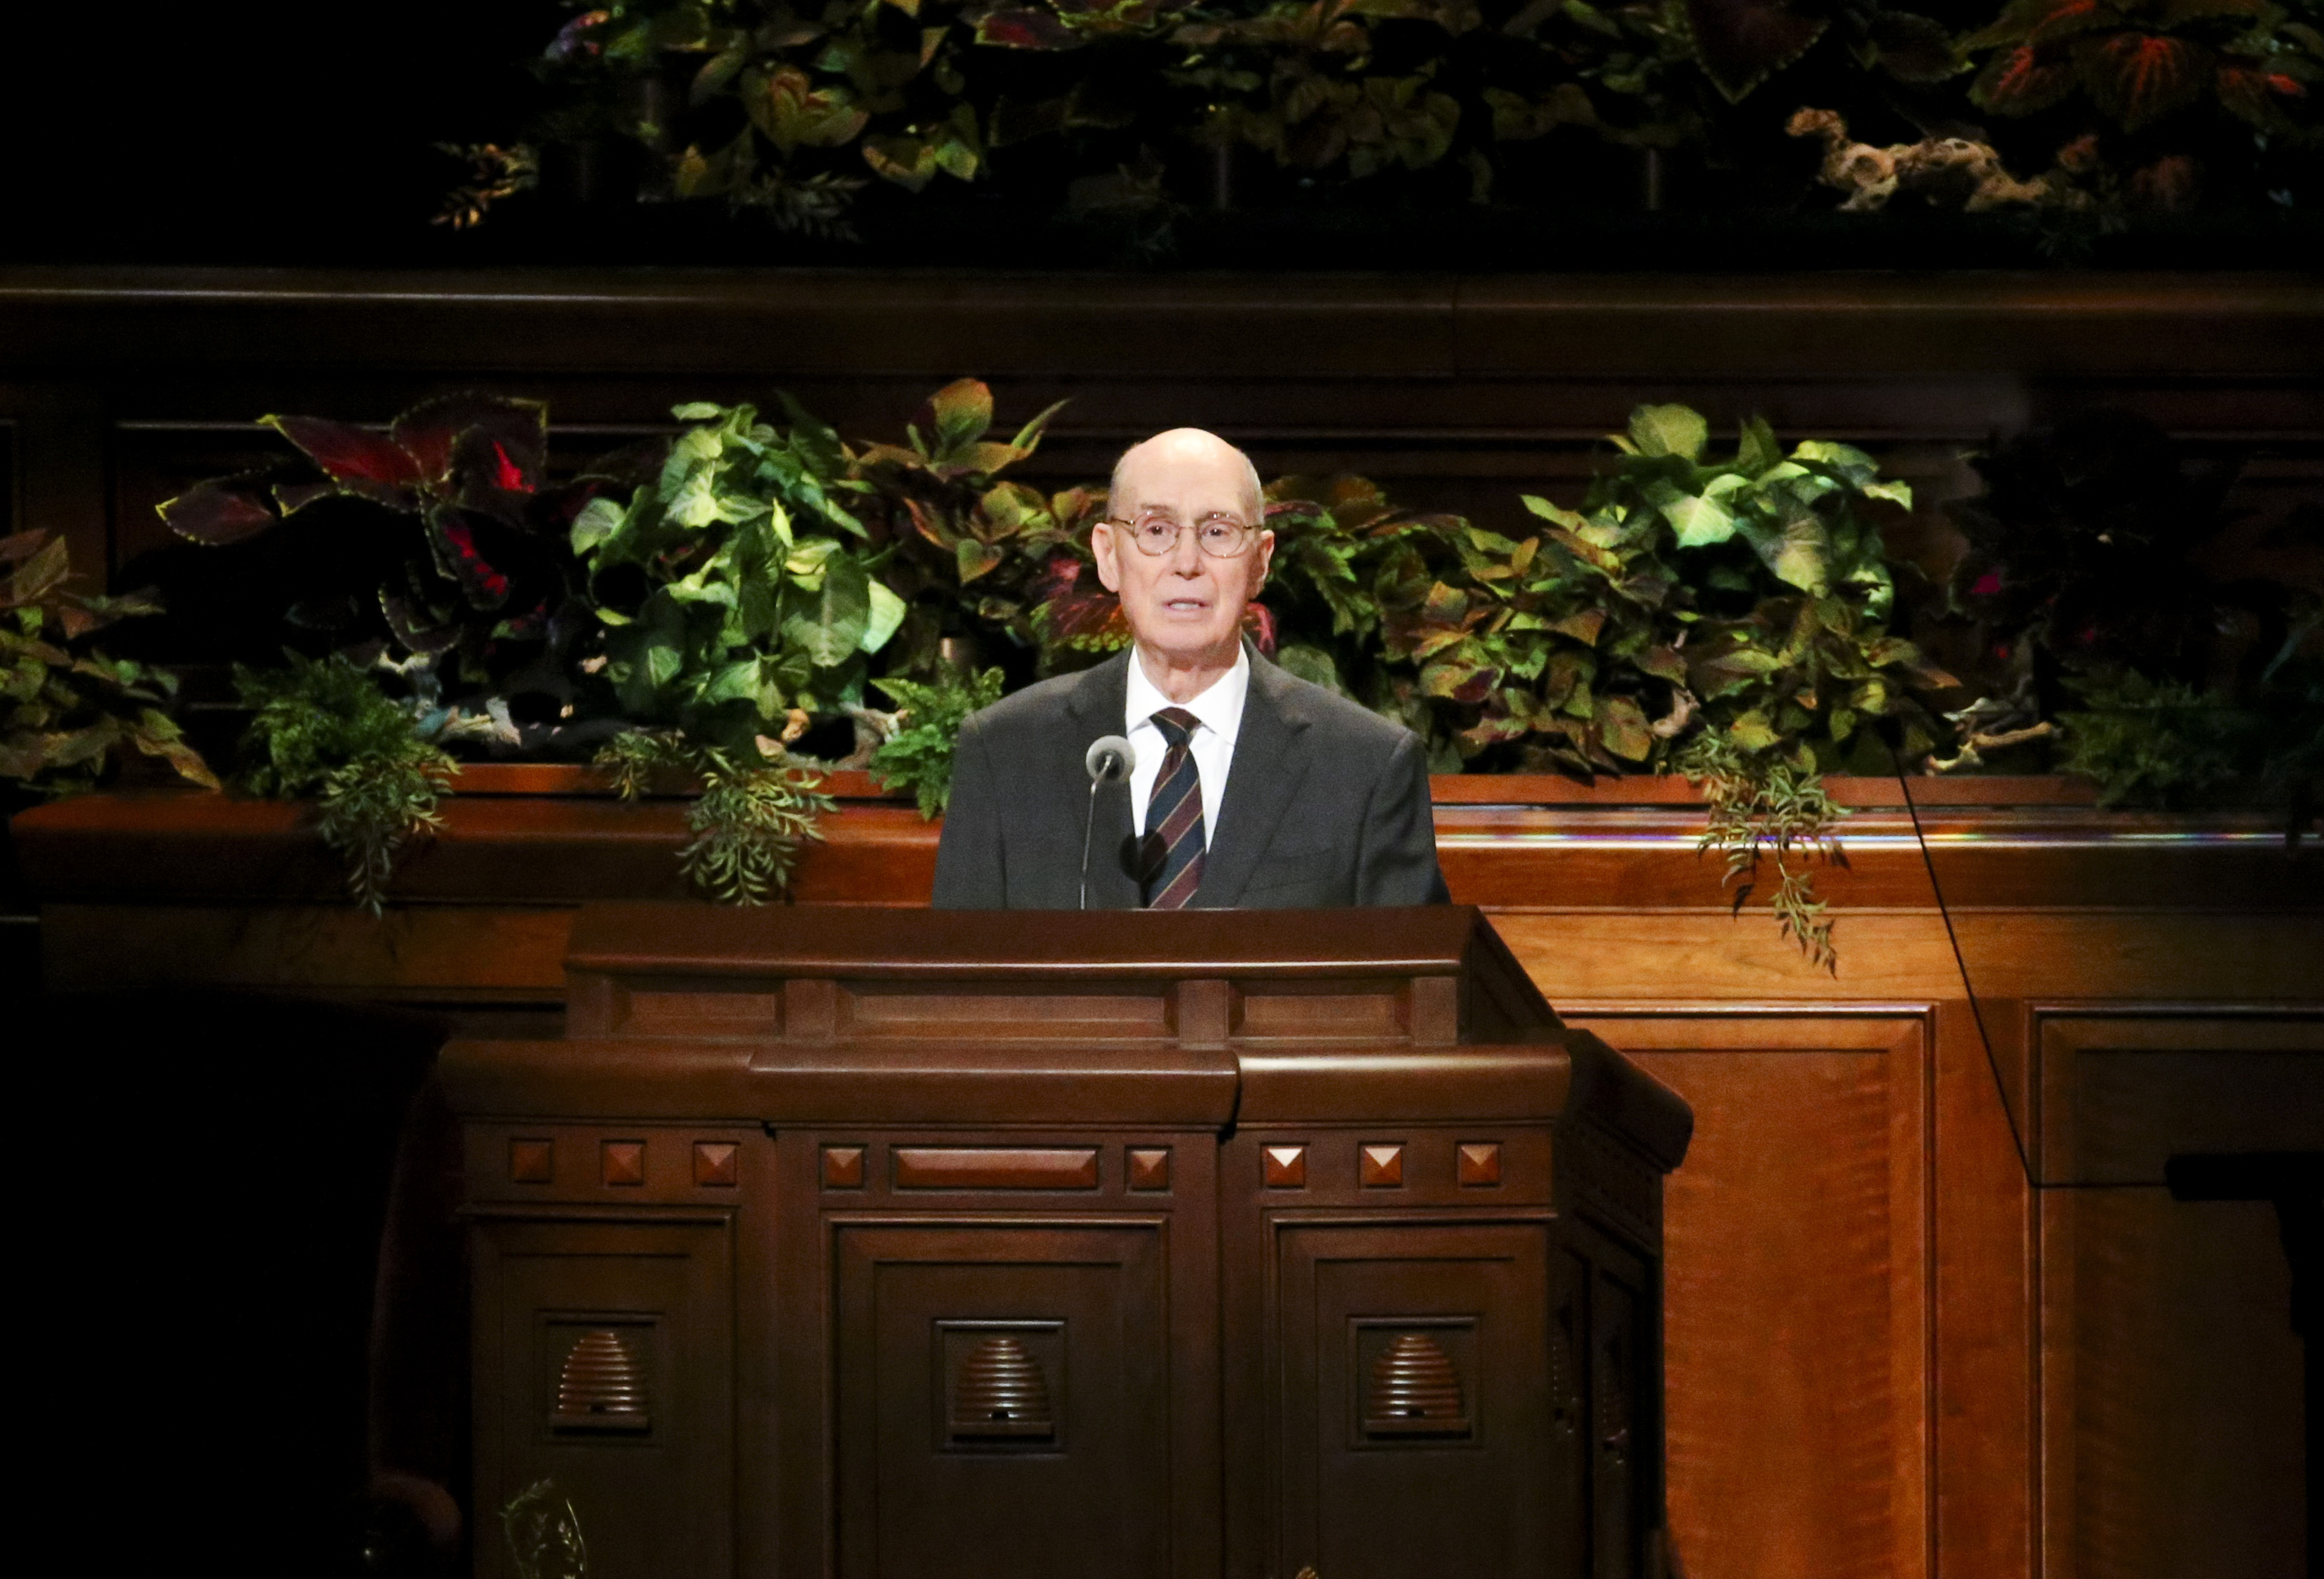 President Henry B. Eyring, second counselor in the First Presidency, speaks during the women's session of the 189th Semiannual General Conference of The Church of Jesus Christ of Latter-day Saints at the Conference Center in Salt Lake City on Saturday, Oct. 5, 2019.